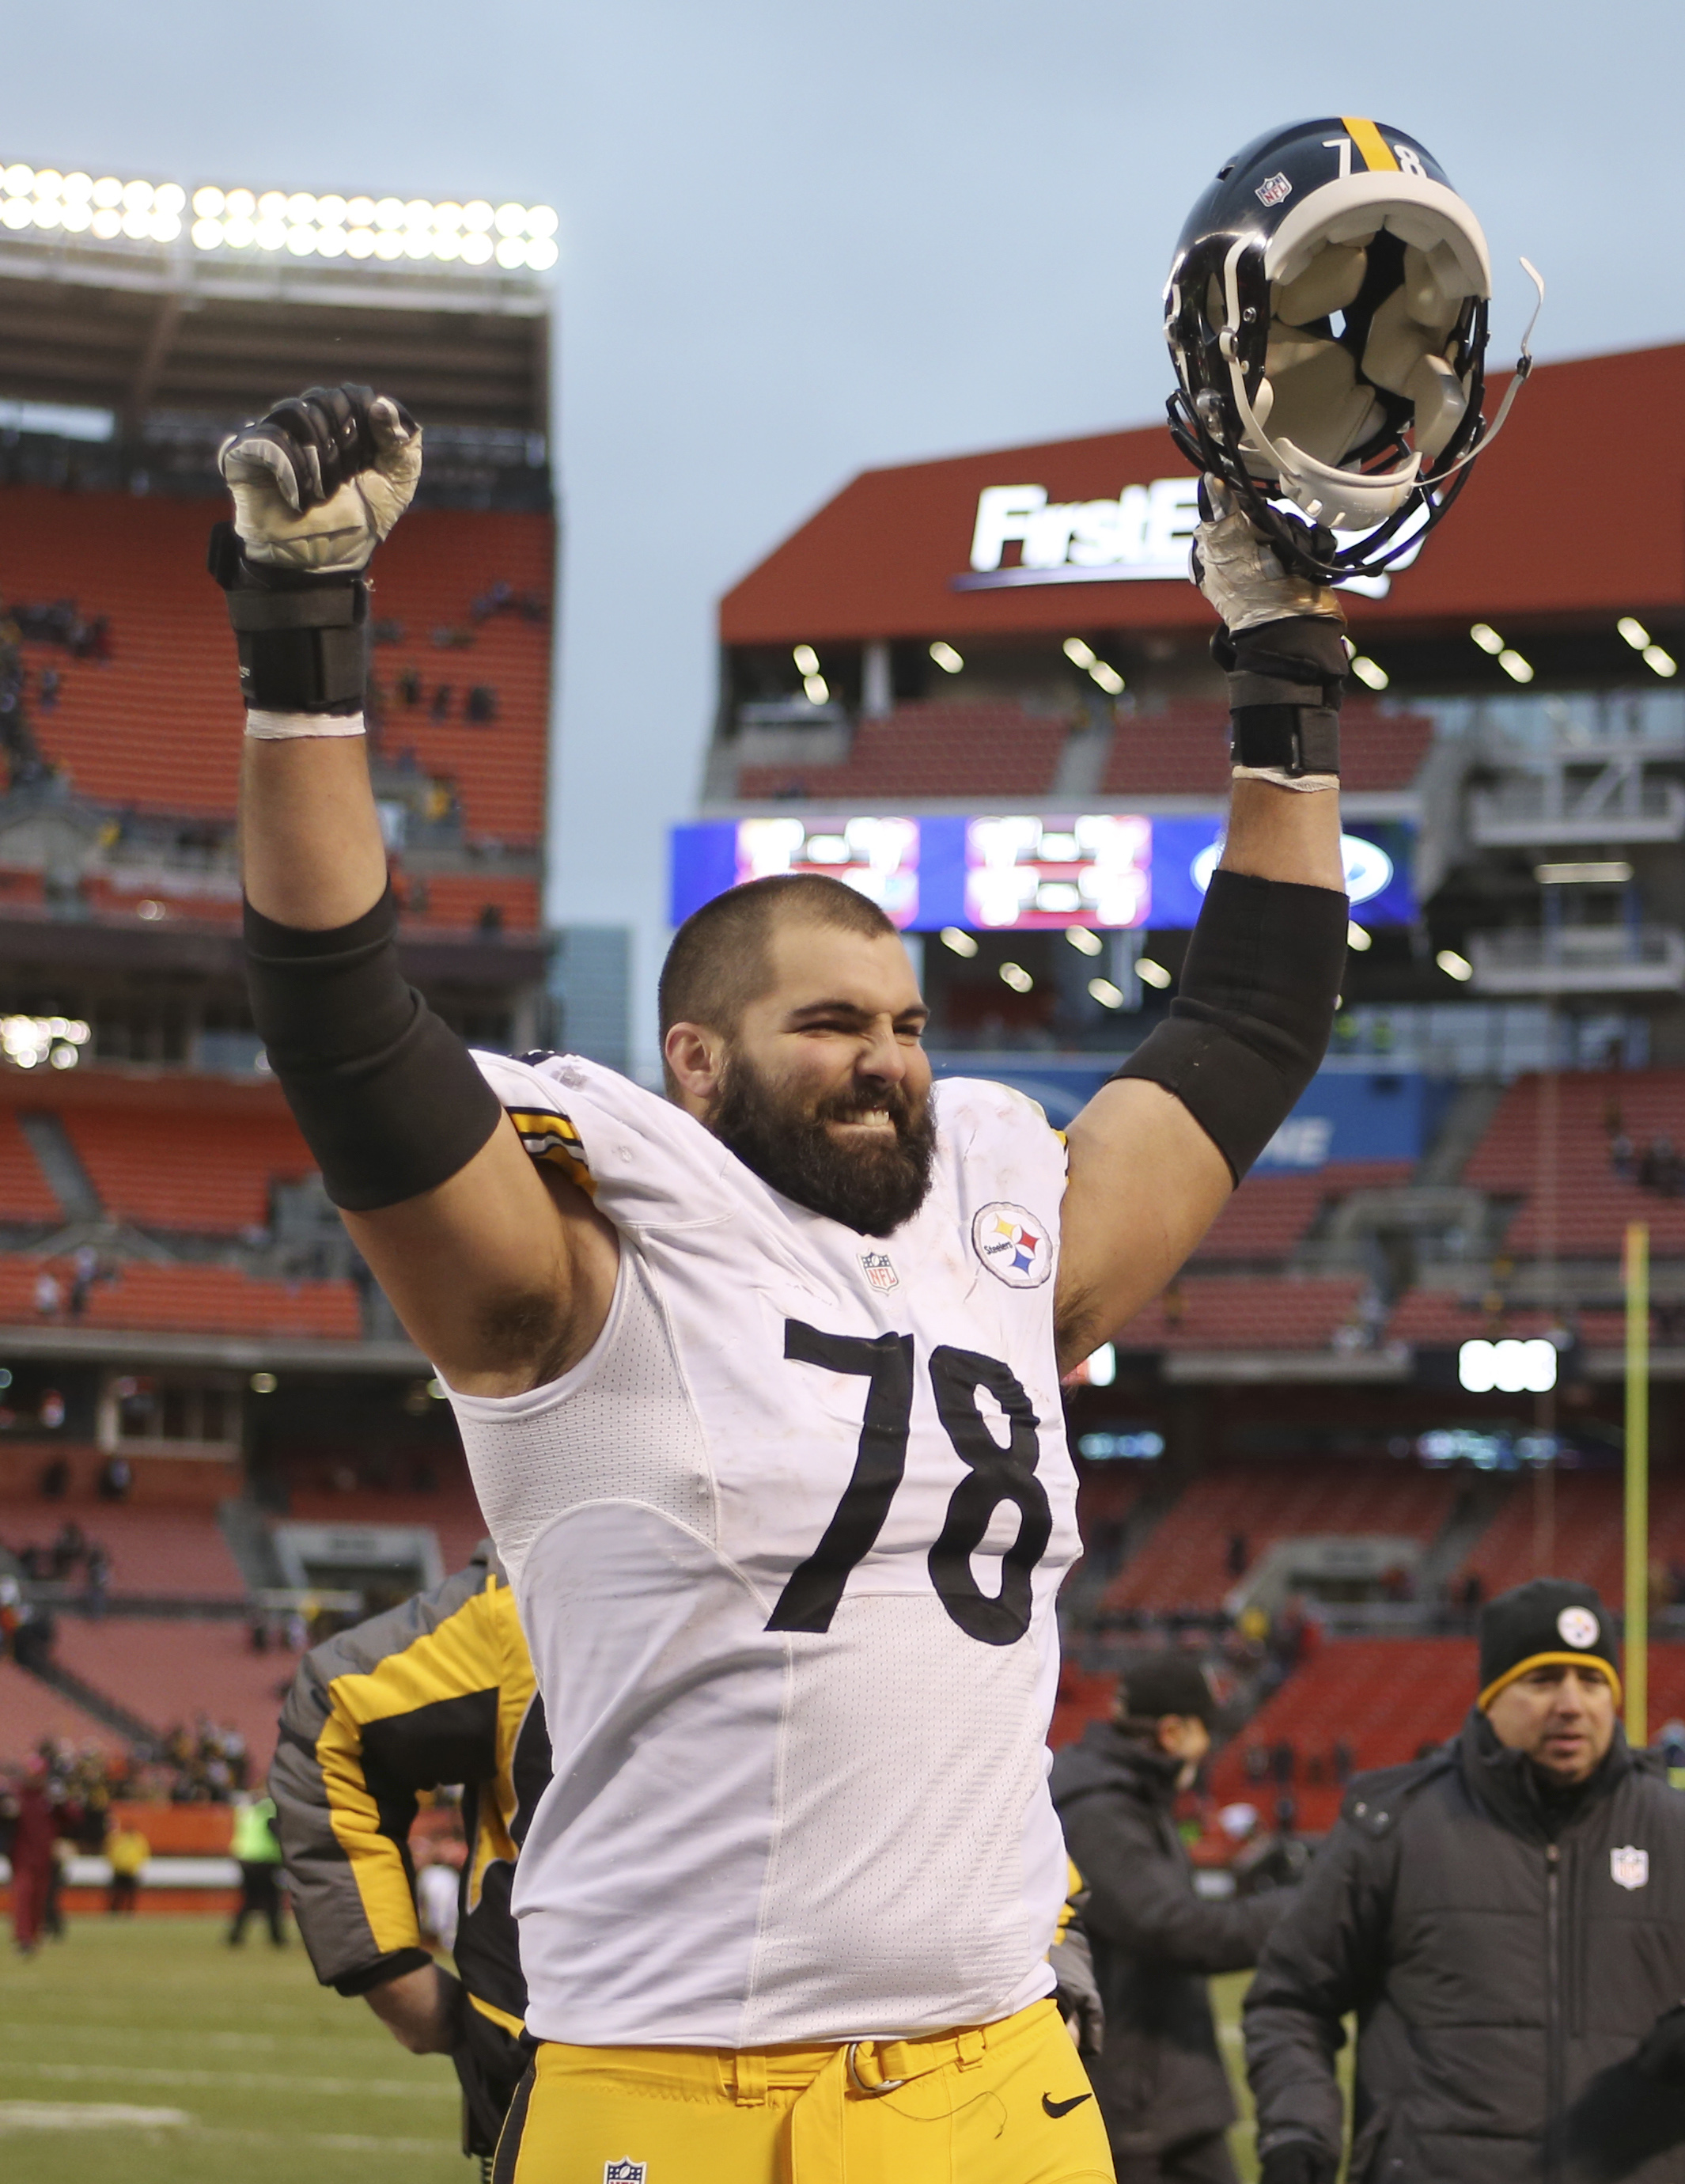 Pittsburgh Steelers tackle Alejandro Villanueva celebrates after the Steelers won 28-12 during an NFL football game against the Cleveland Browns, Sunday, Jan. 3, 2016, in Cleveland. (AP Photo/Ron Schwane)